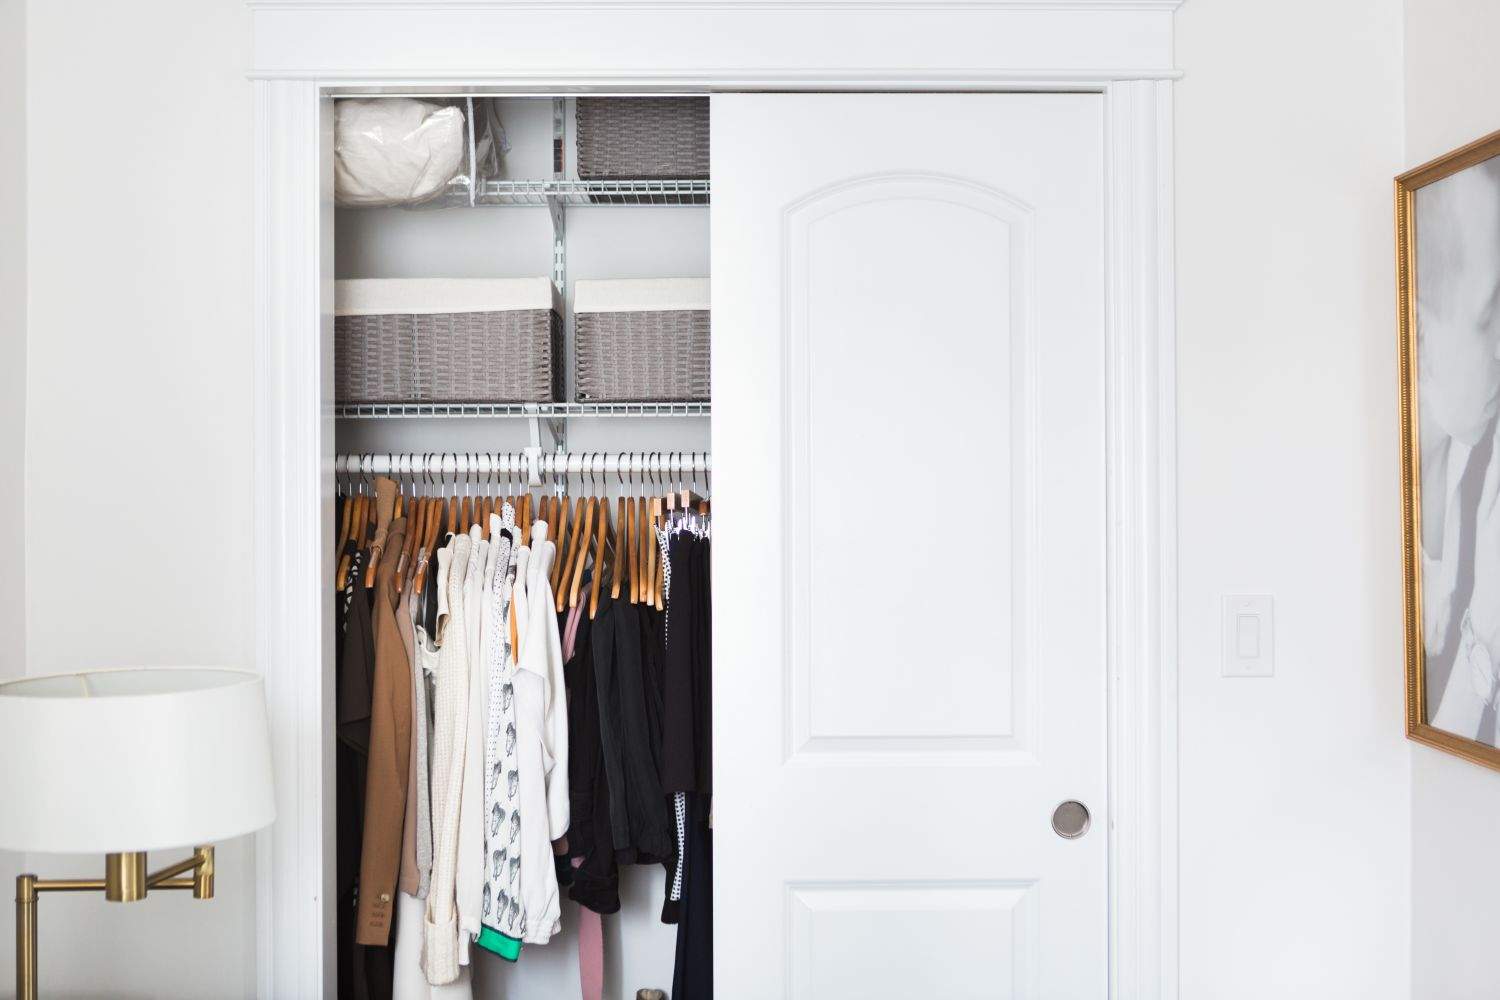 10 affordable easy ways to add lighting to a closet without wiring apartment therapy. Black Bedroom Furniture Sets. Home Design Ideas